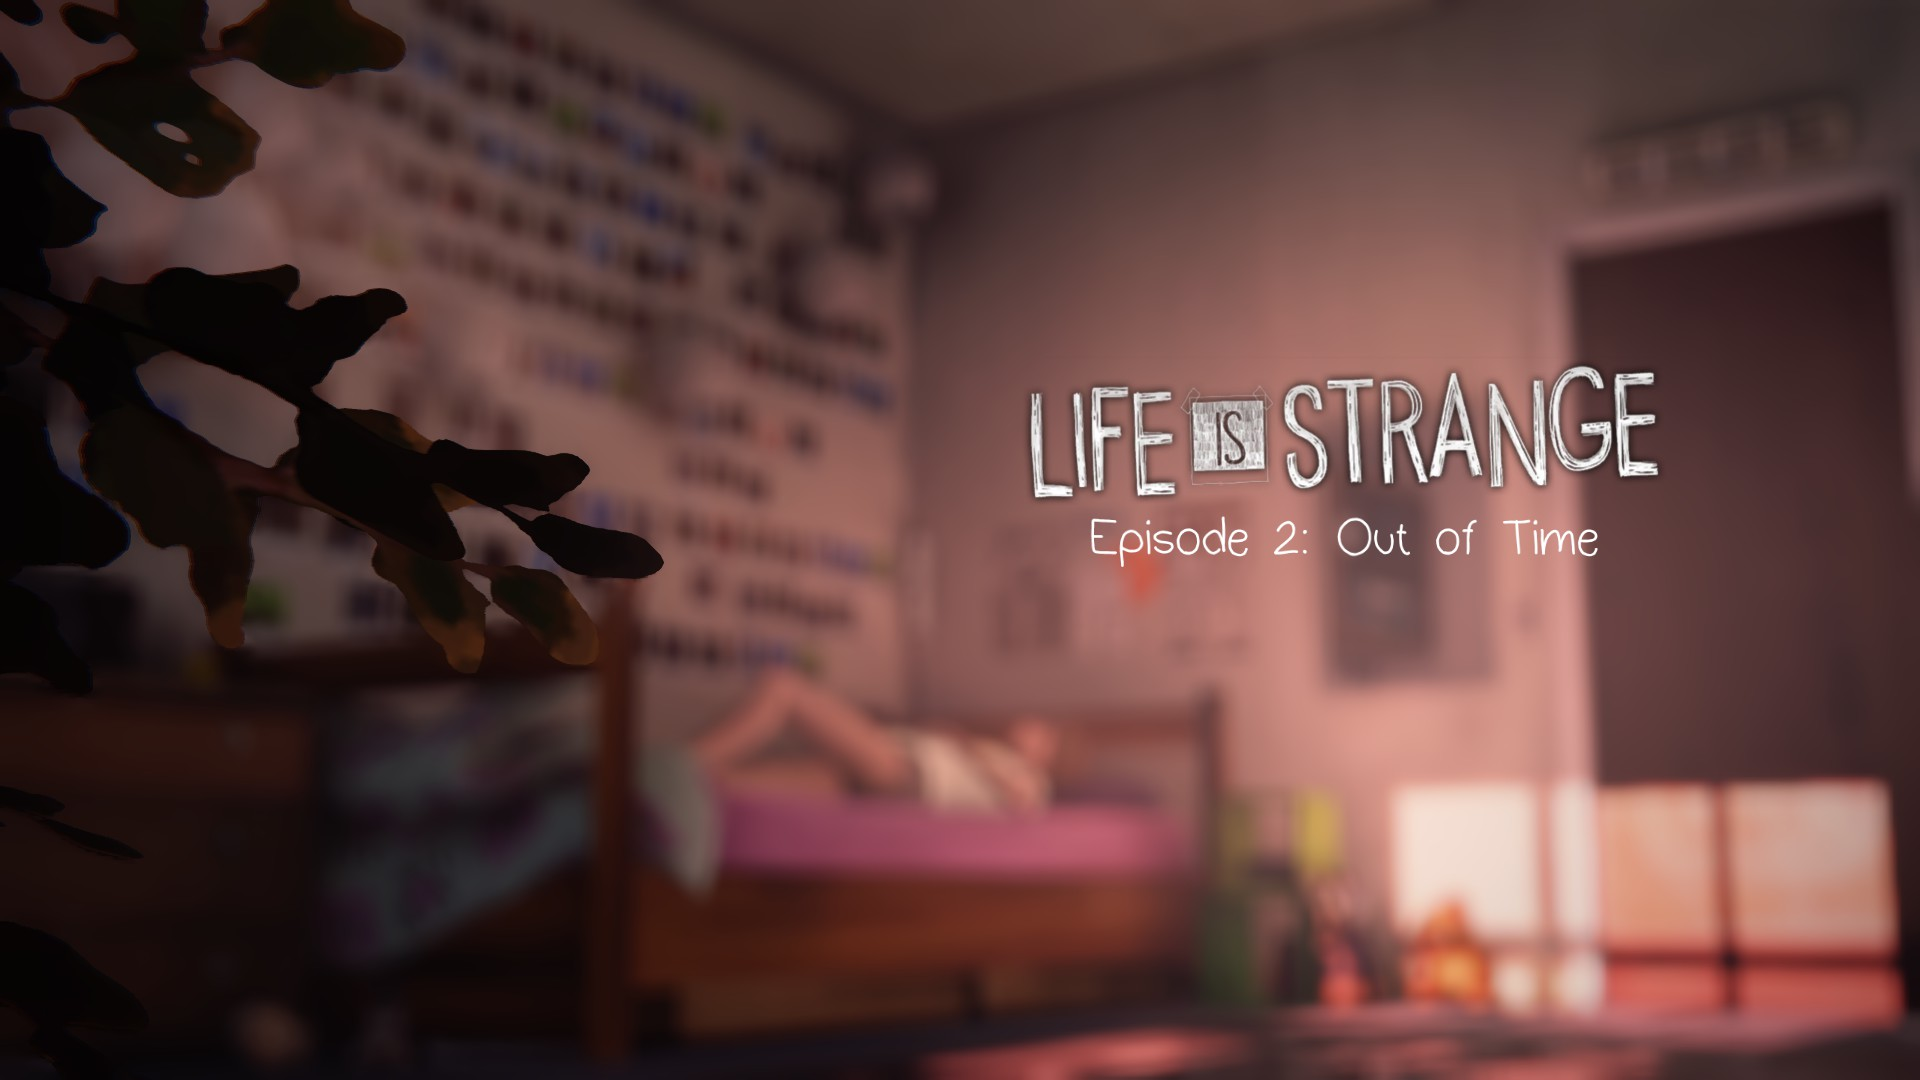 Life is Strange - Title